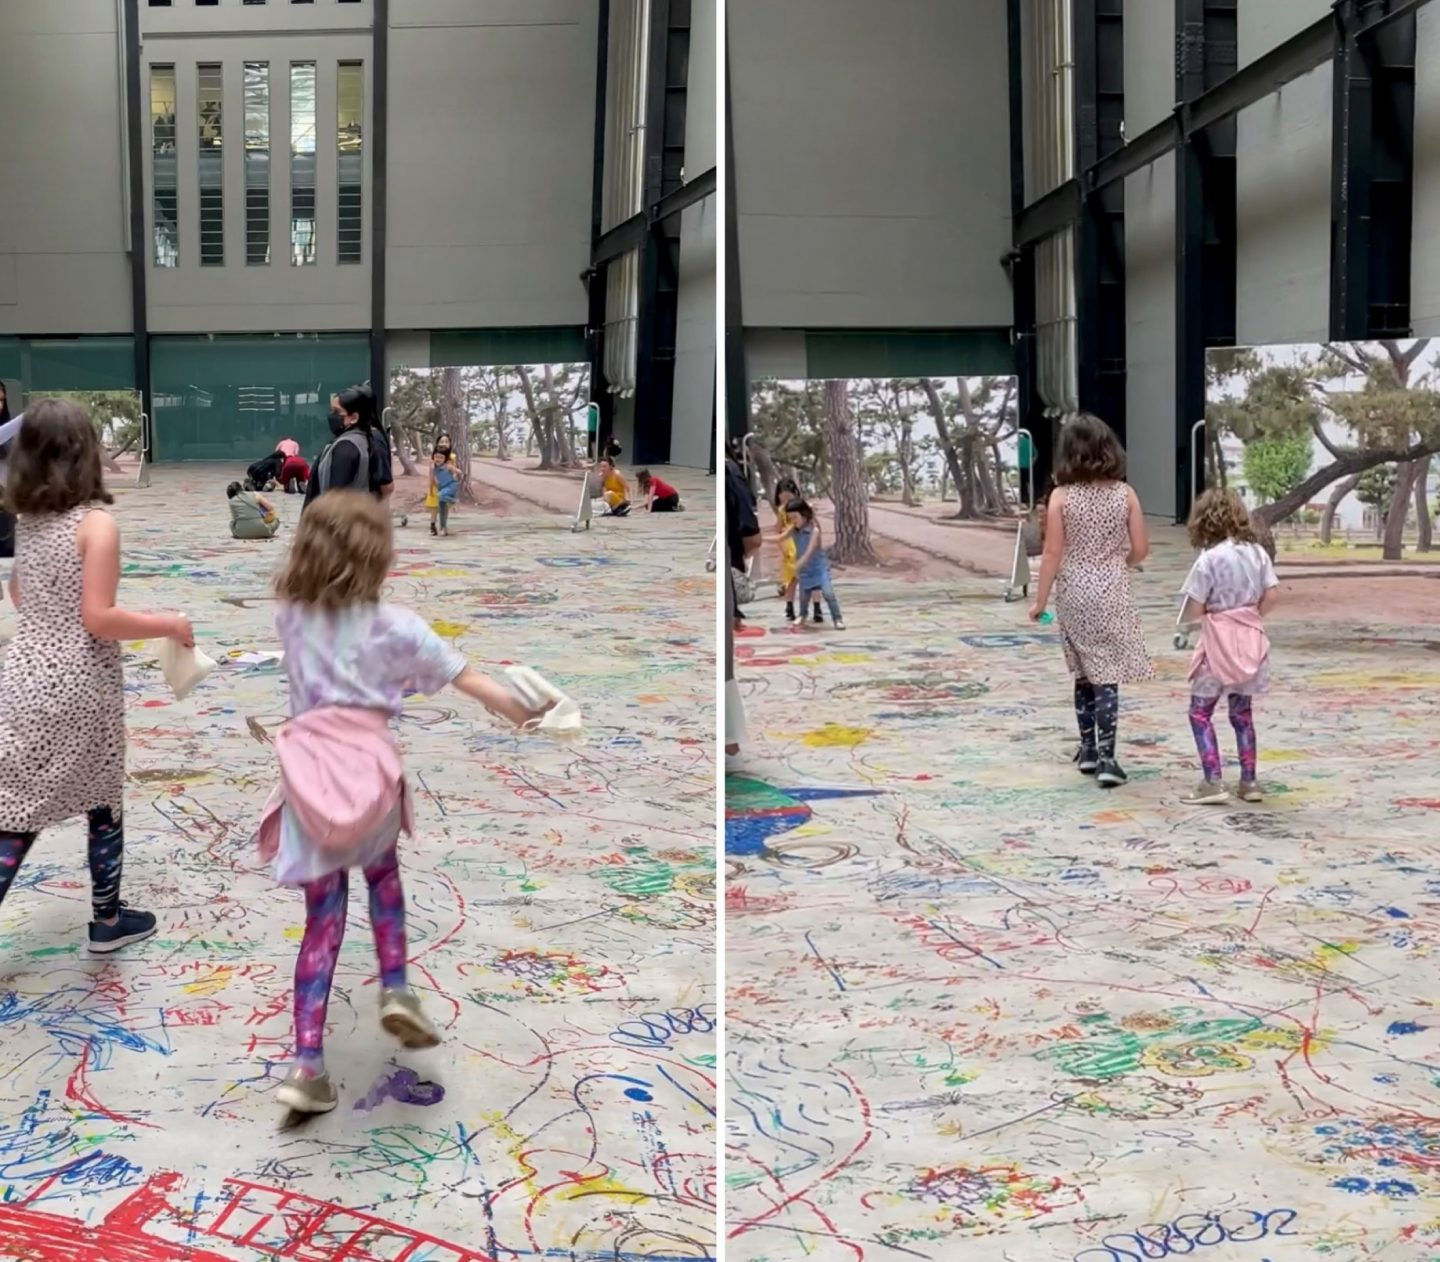 Tate Modern for kids - Mega Please Draw Freely event